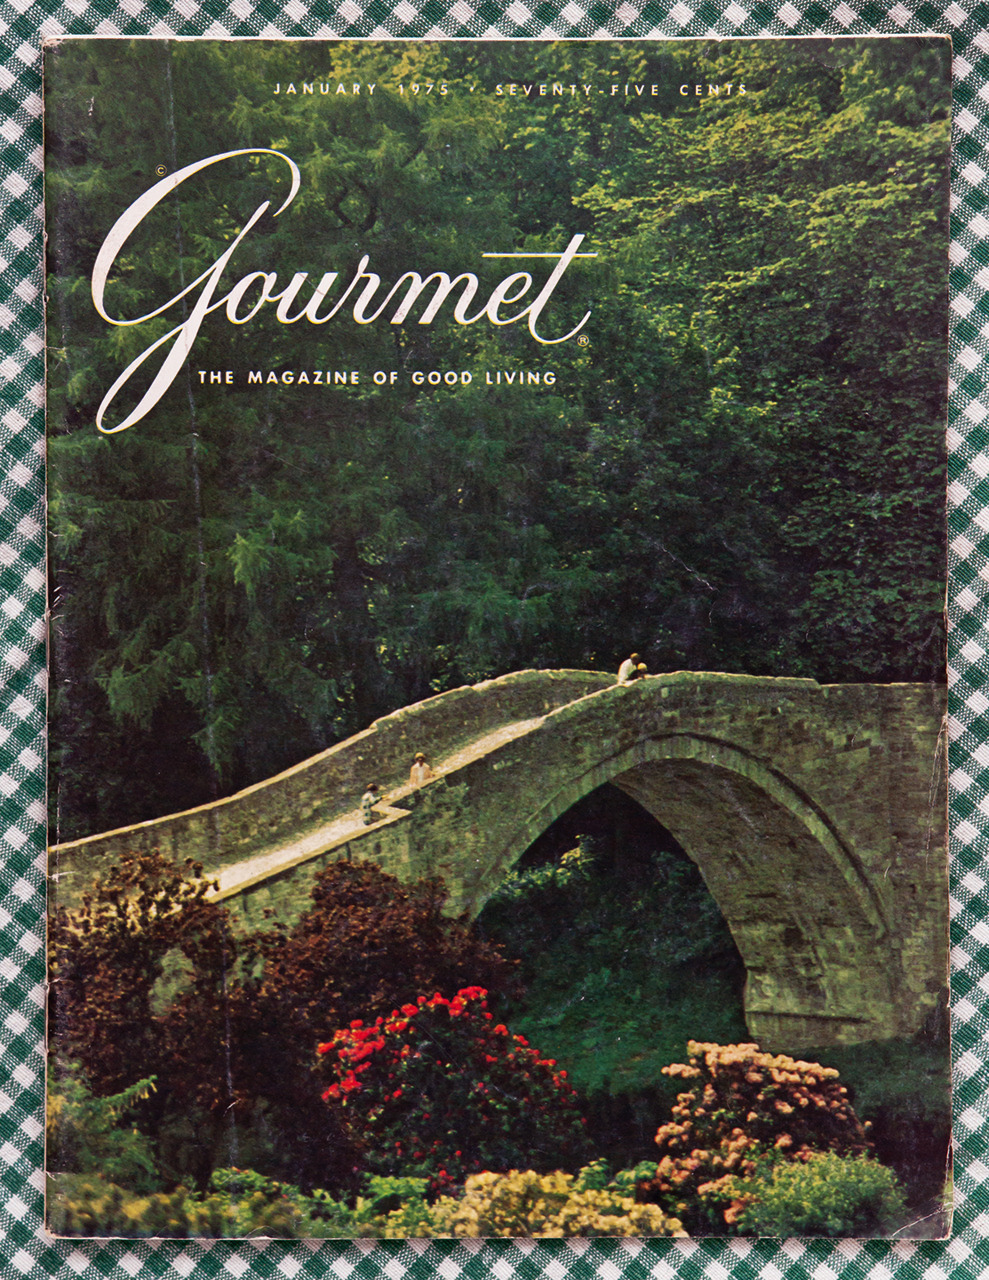 Gourmet: January 1975